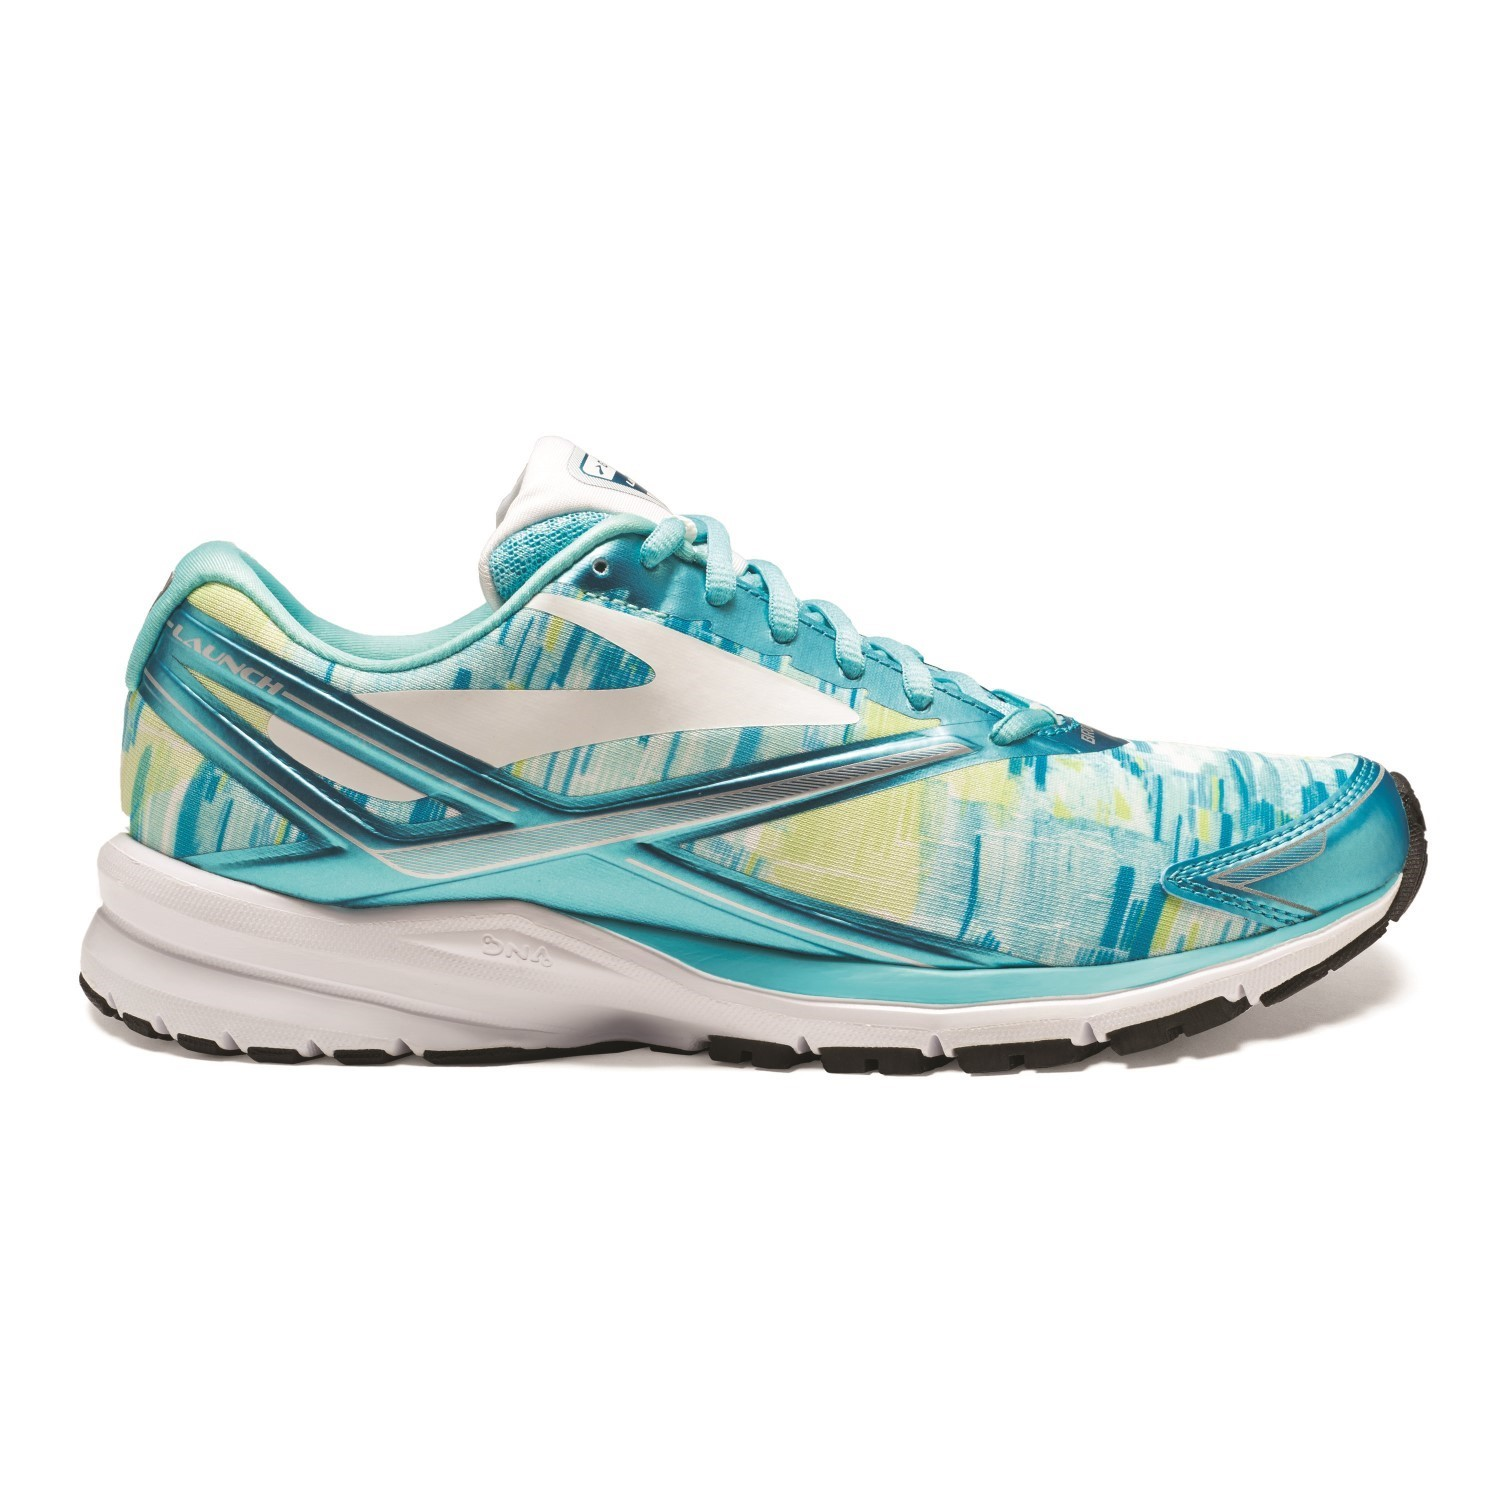 deab540ff71 Brooks Launch 4 Kasbah - Limited Edition - Womens Running Shoes - Kasbah  Blue Radiance